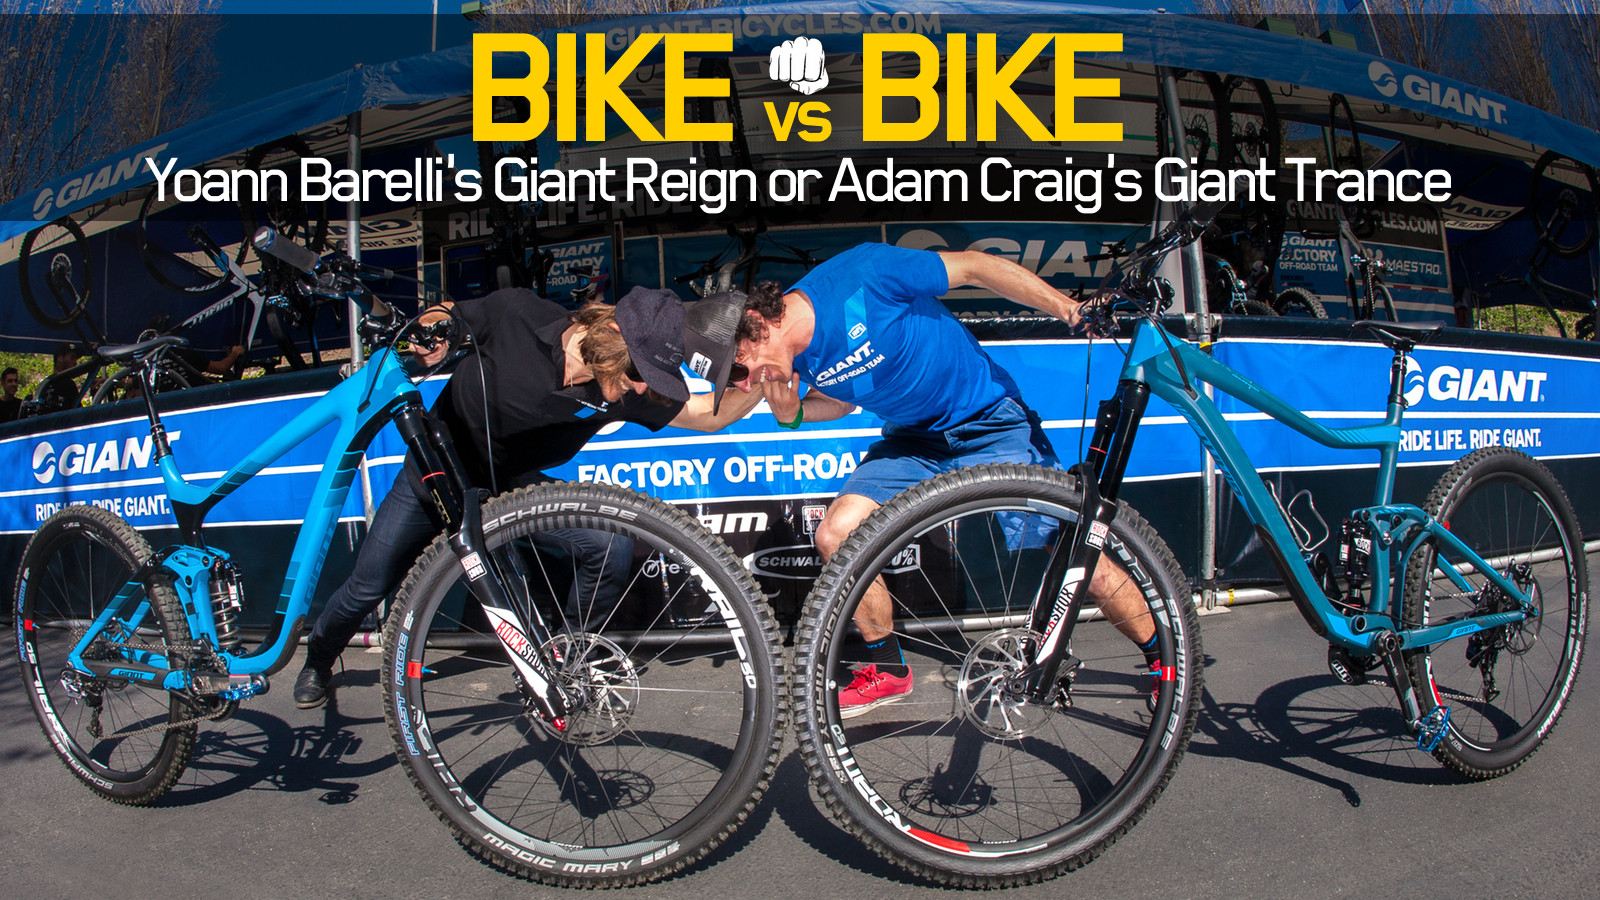 68501f0f8c7 Bike vs. Bike - Yoann Barelli's Giant Reign or Adam Craig's Giant ...